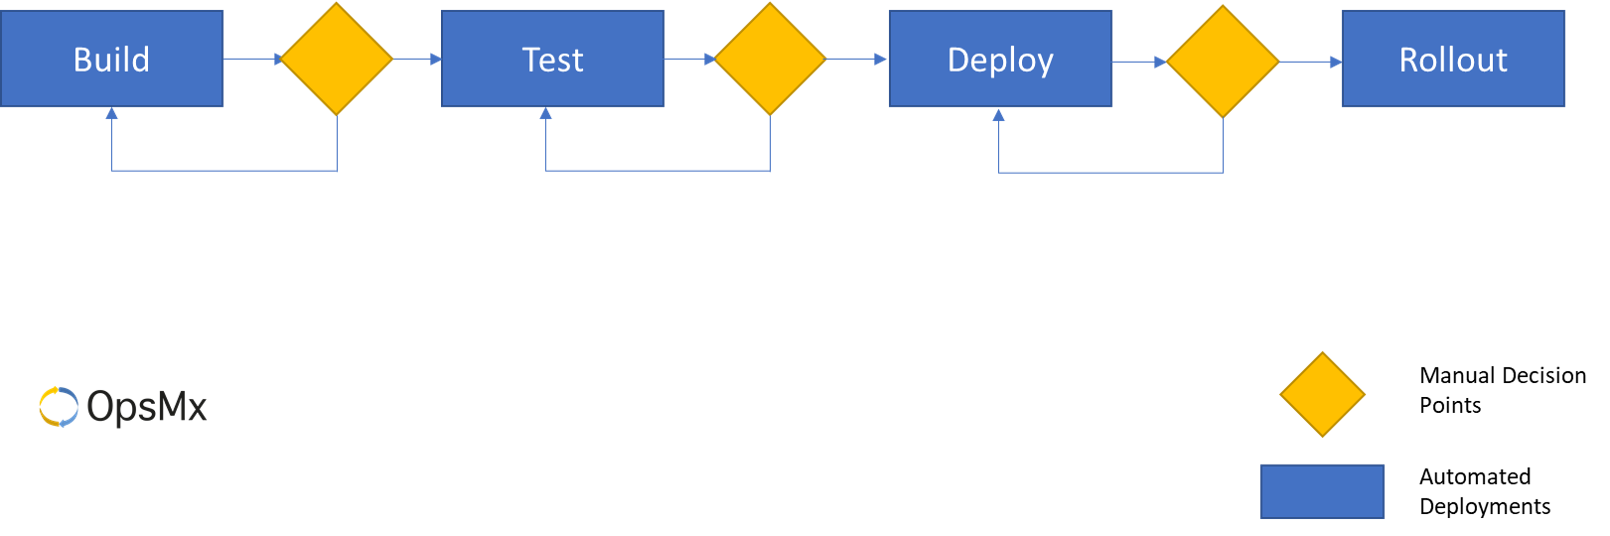 Software Delivery Pipeline